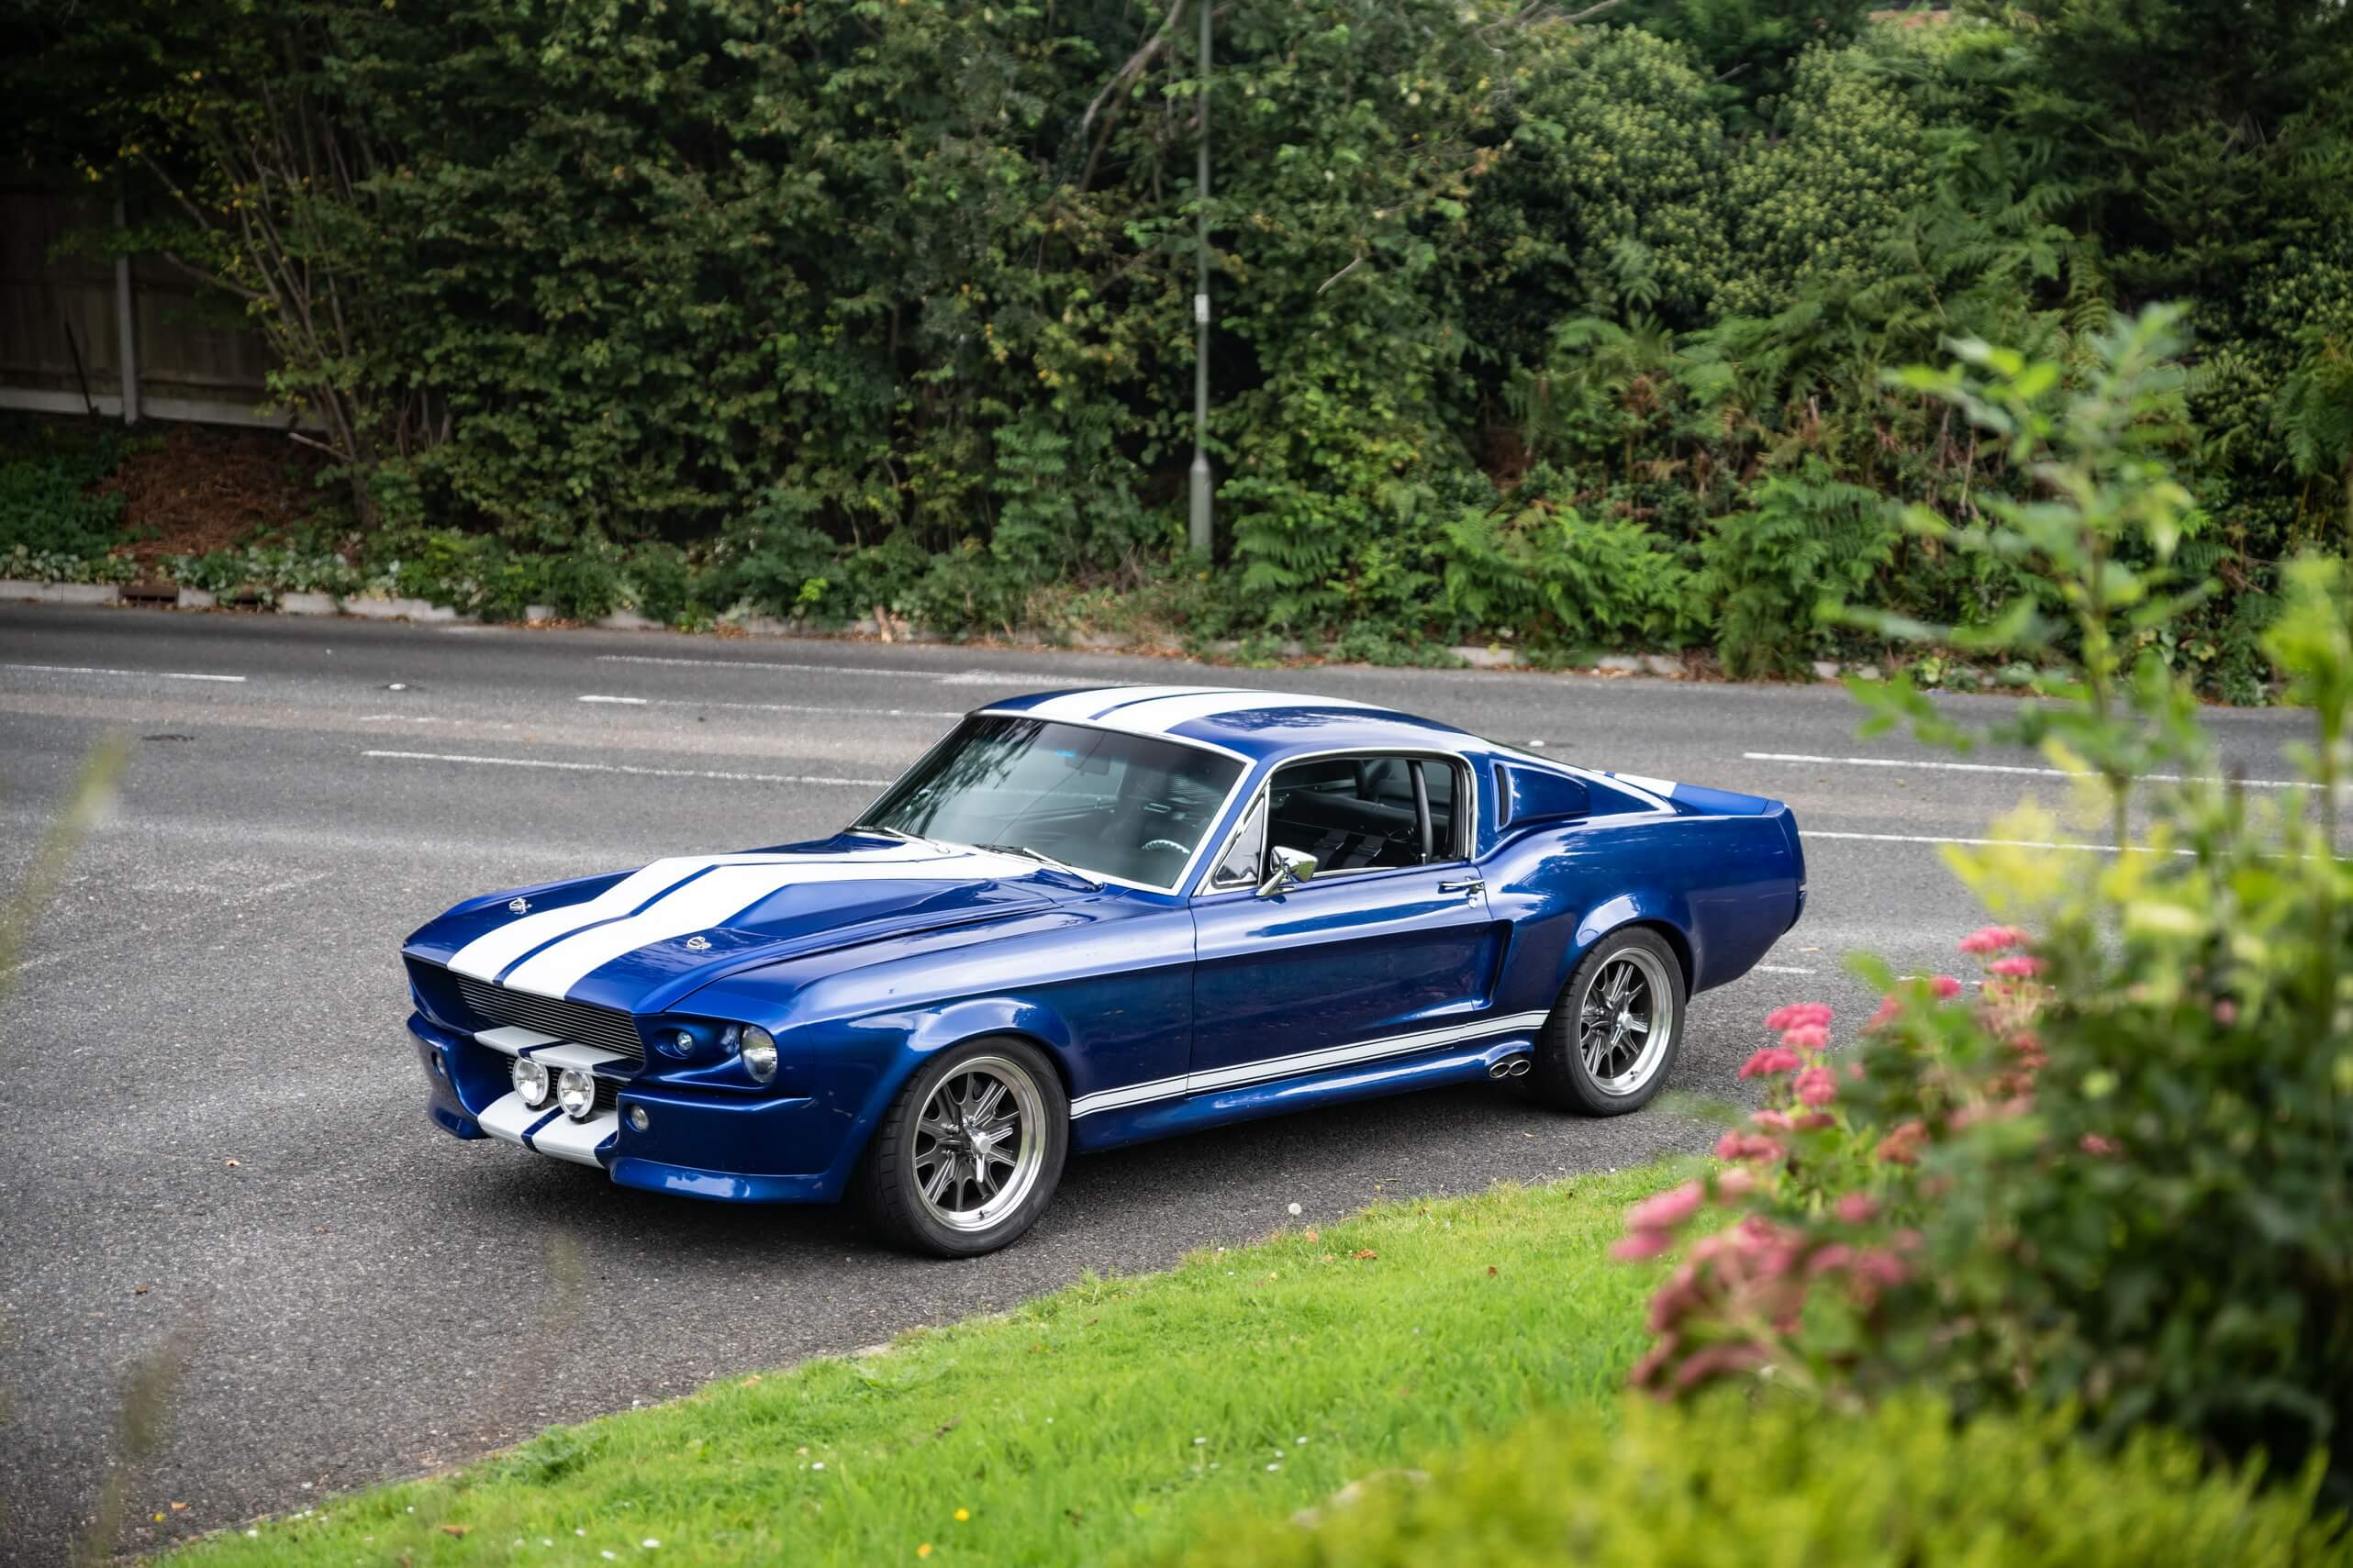 Ford Mustang (Blue), 1967 now for € 115,744 - buy @ Rikon ...